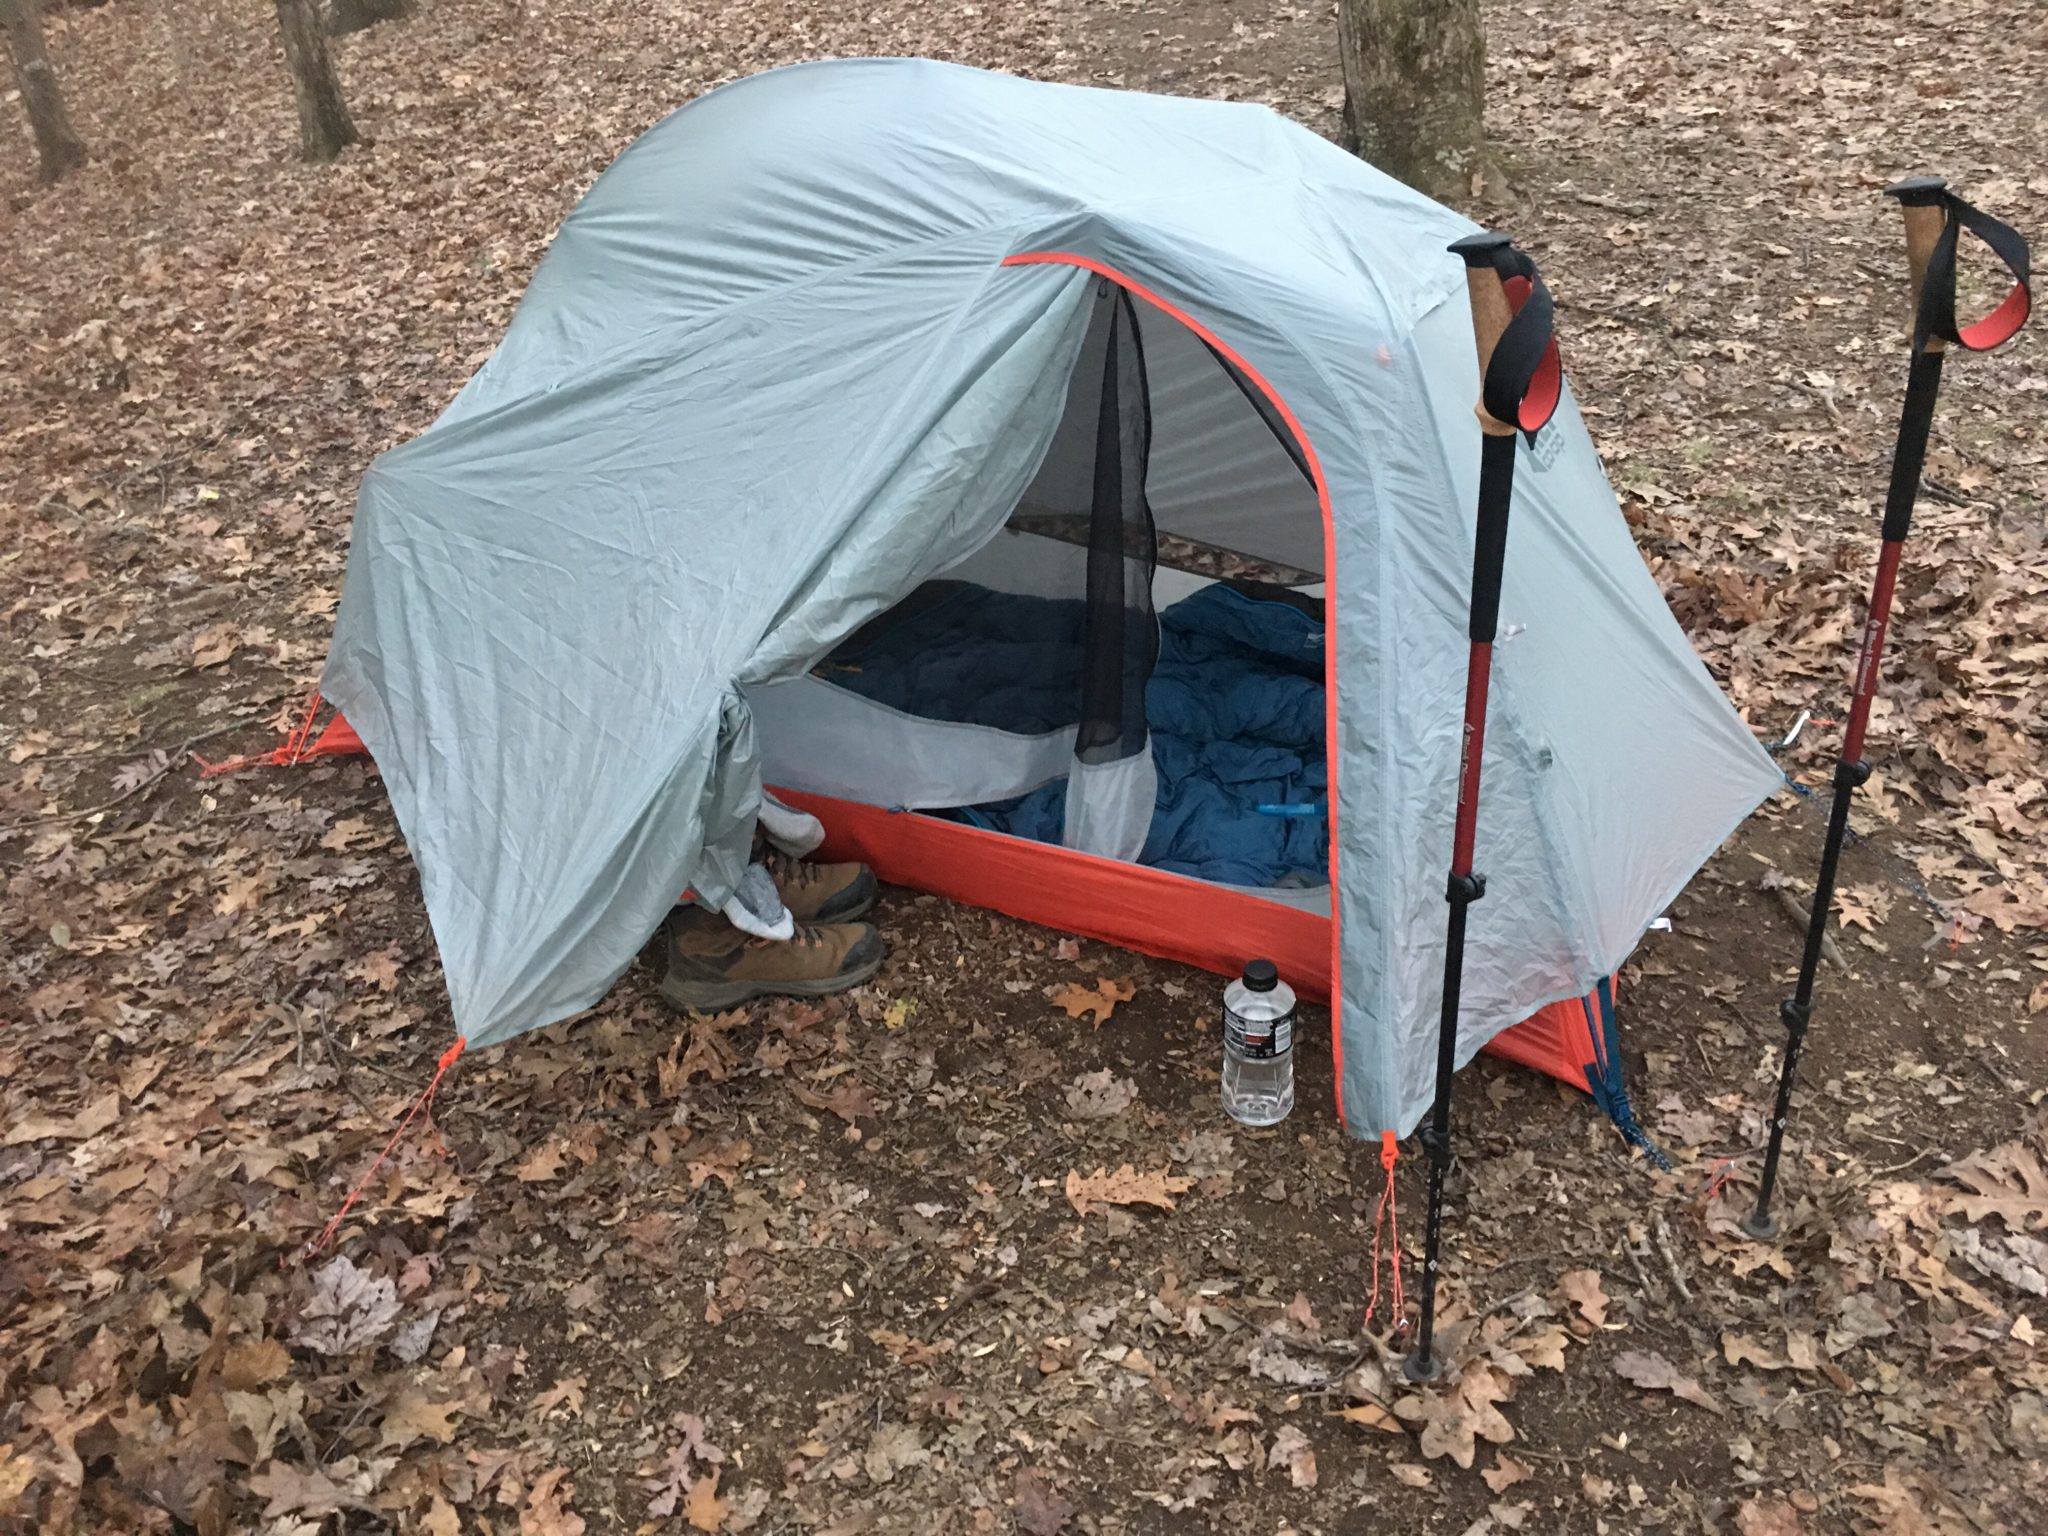 First time pitching the tent on the trail